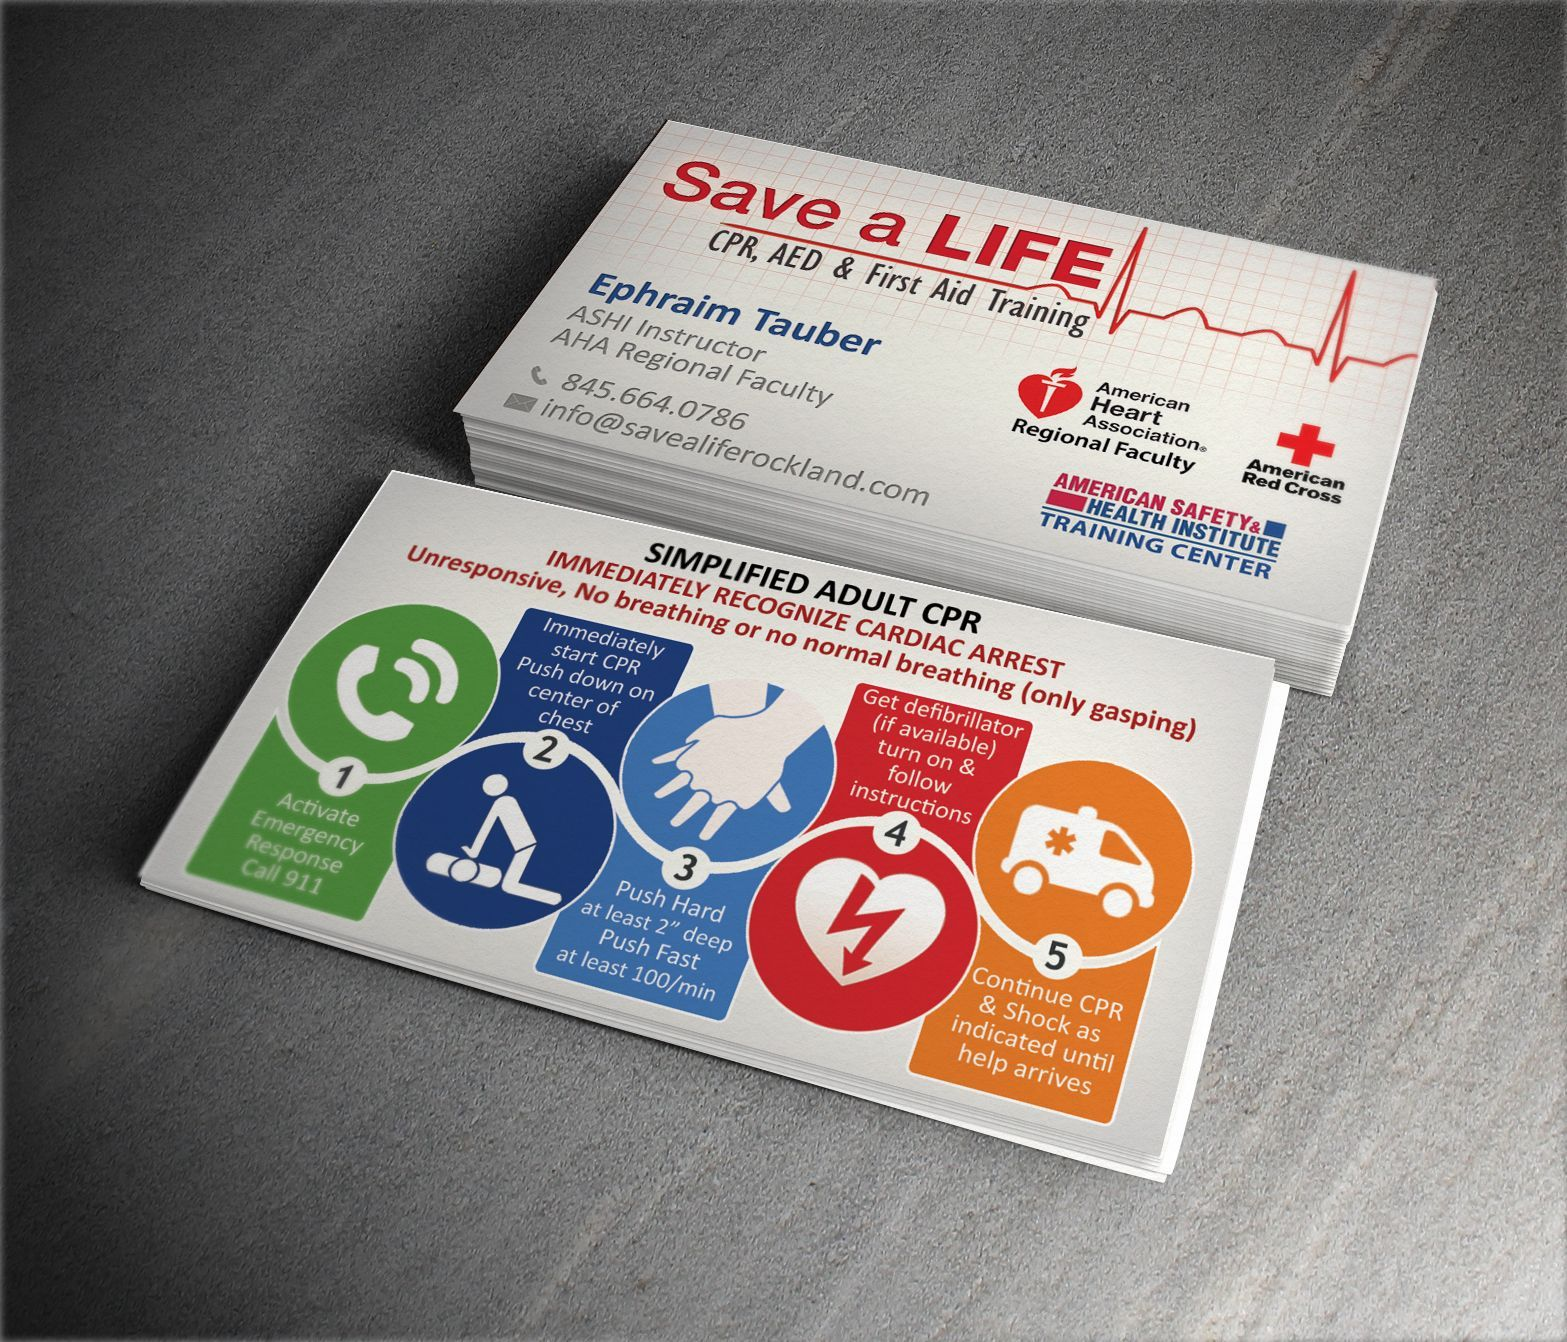 Unique Useful Business Card Design For Cpr Instructor Customizable Business Cards Unique Business Cards Design Unique Business Cards